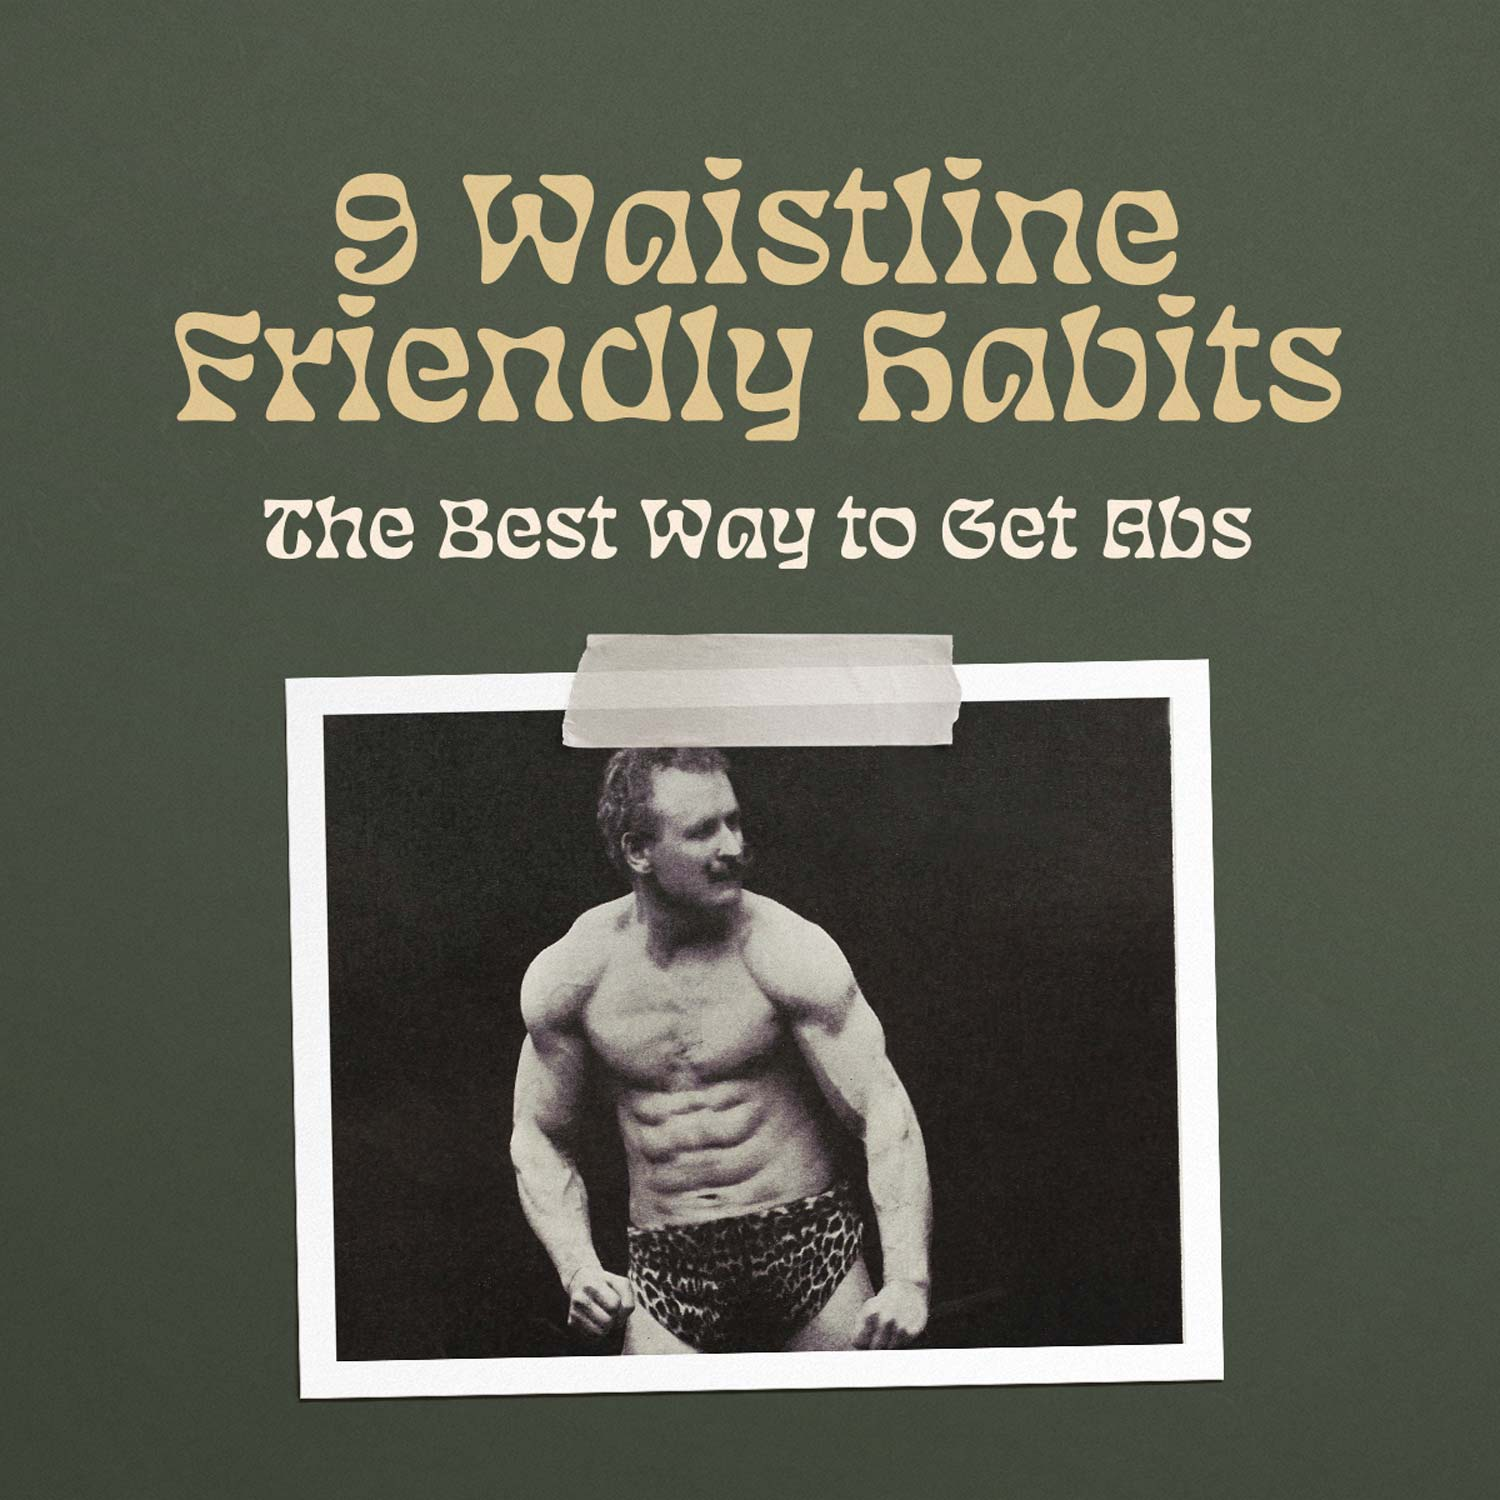 So We Flow... 9 Waistline Friendly Habits Infographic Cover